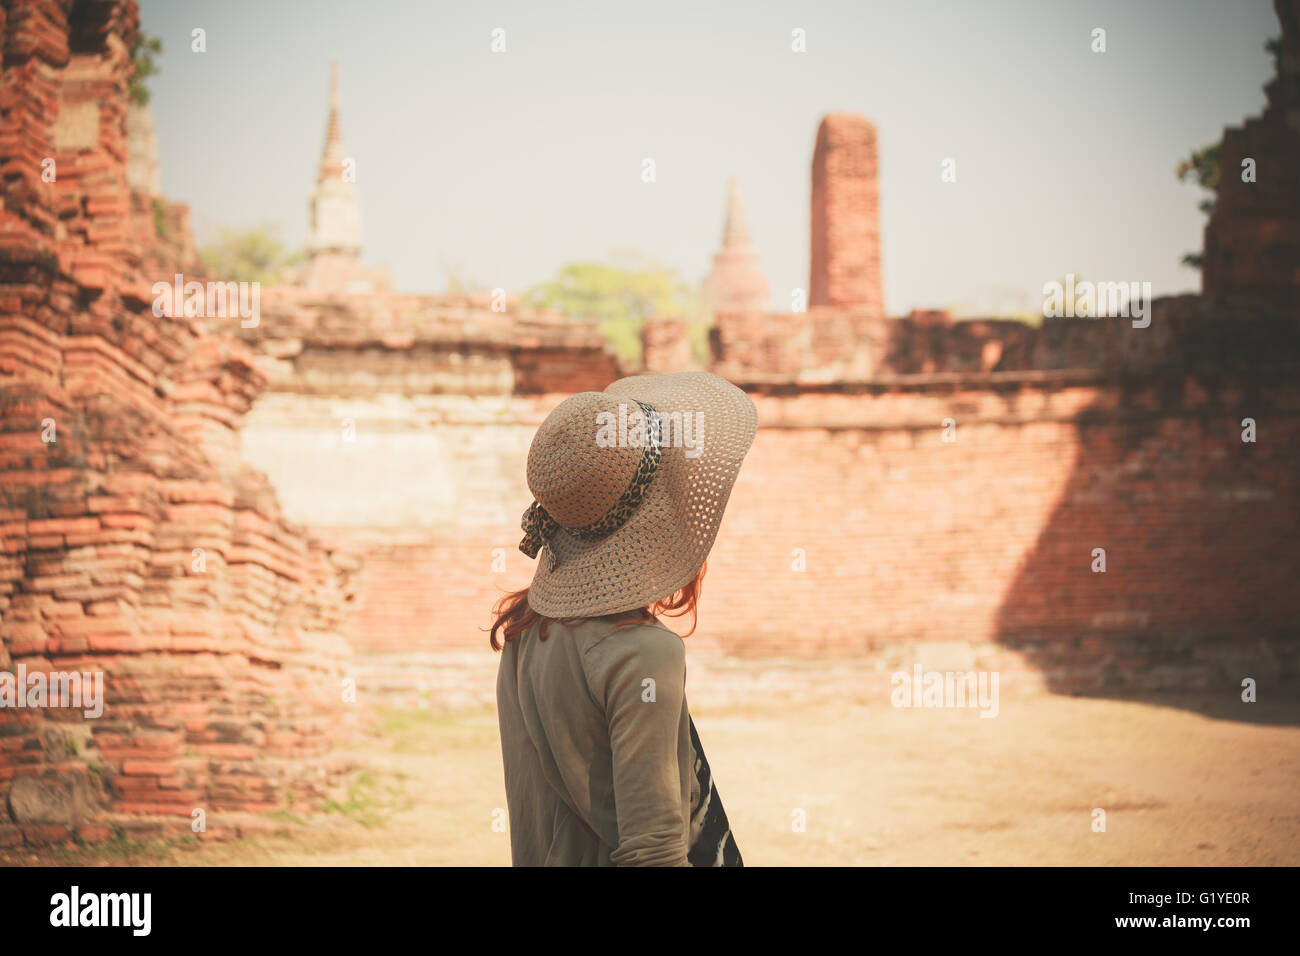 A young woman is exploring the ancient ruins of a buddhist temple city - Stock Image